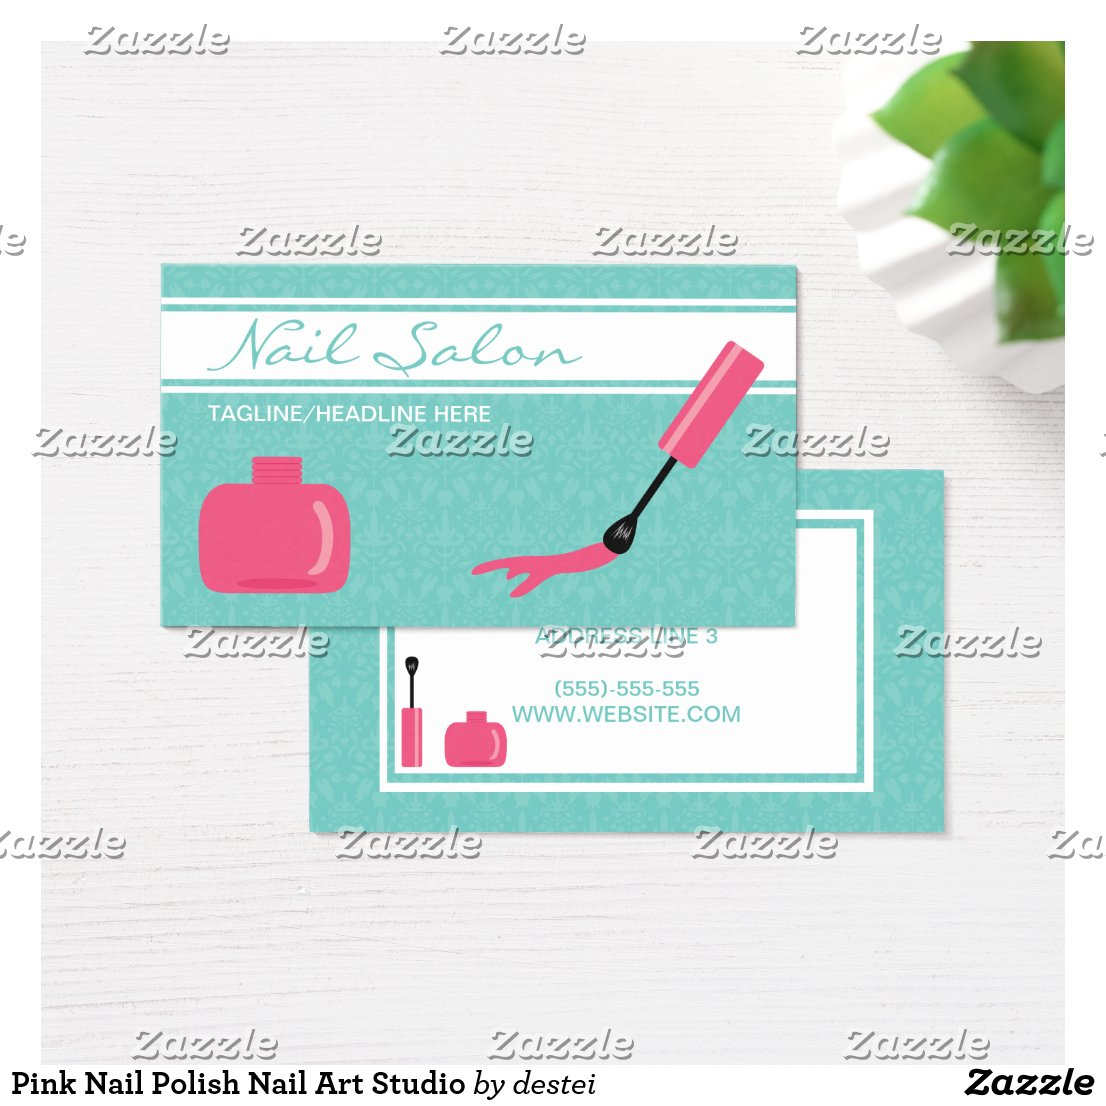 Pink Nail Polish Nail Art Studio Business Card